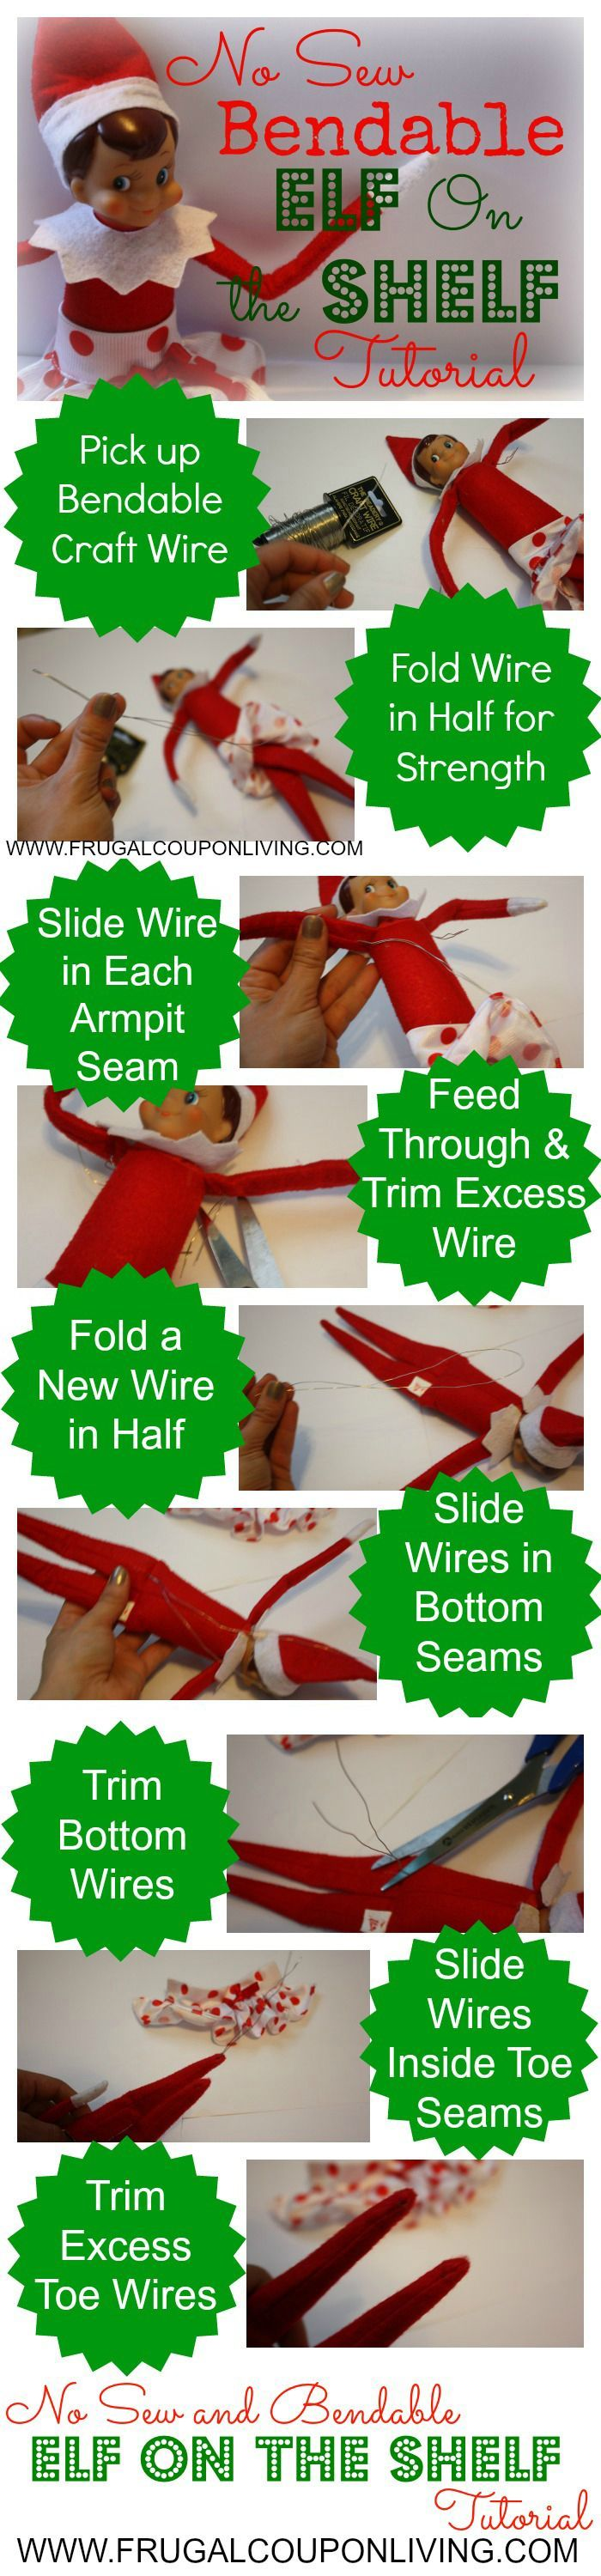 No Sew Bendable Elf on the Shelf Tutorial – Easy DIY Craft, make your shelf bendable so you can display them in many differrent poses. This and hundreds of Elf on the Shelf IDeas on Frugal Coupon Living. #elfontheshelf #elfontheshelfideas #DIY